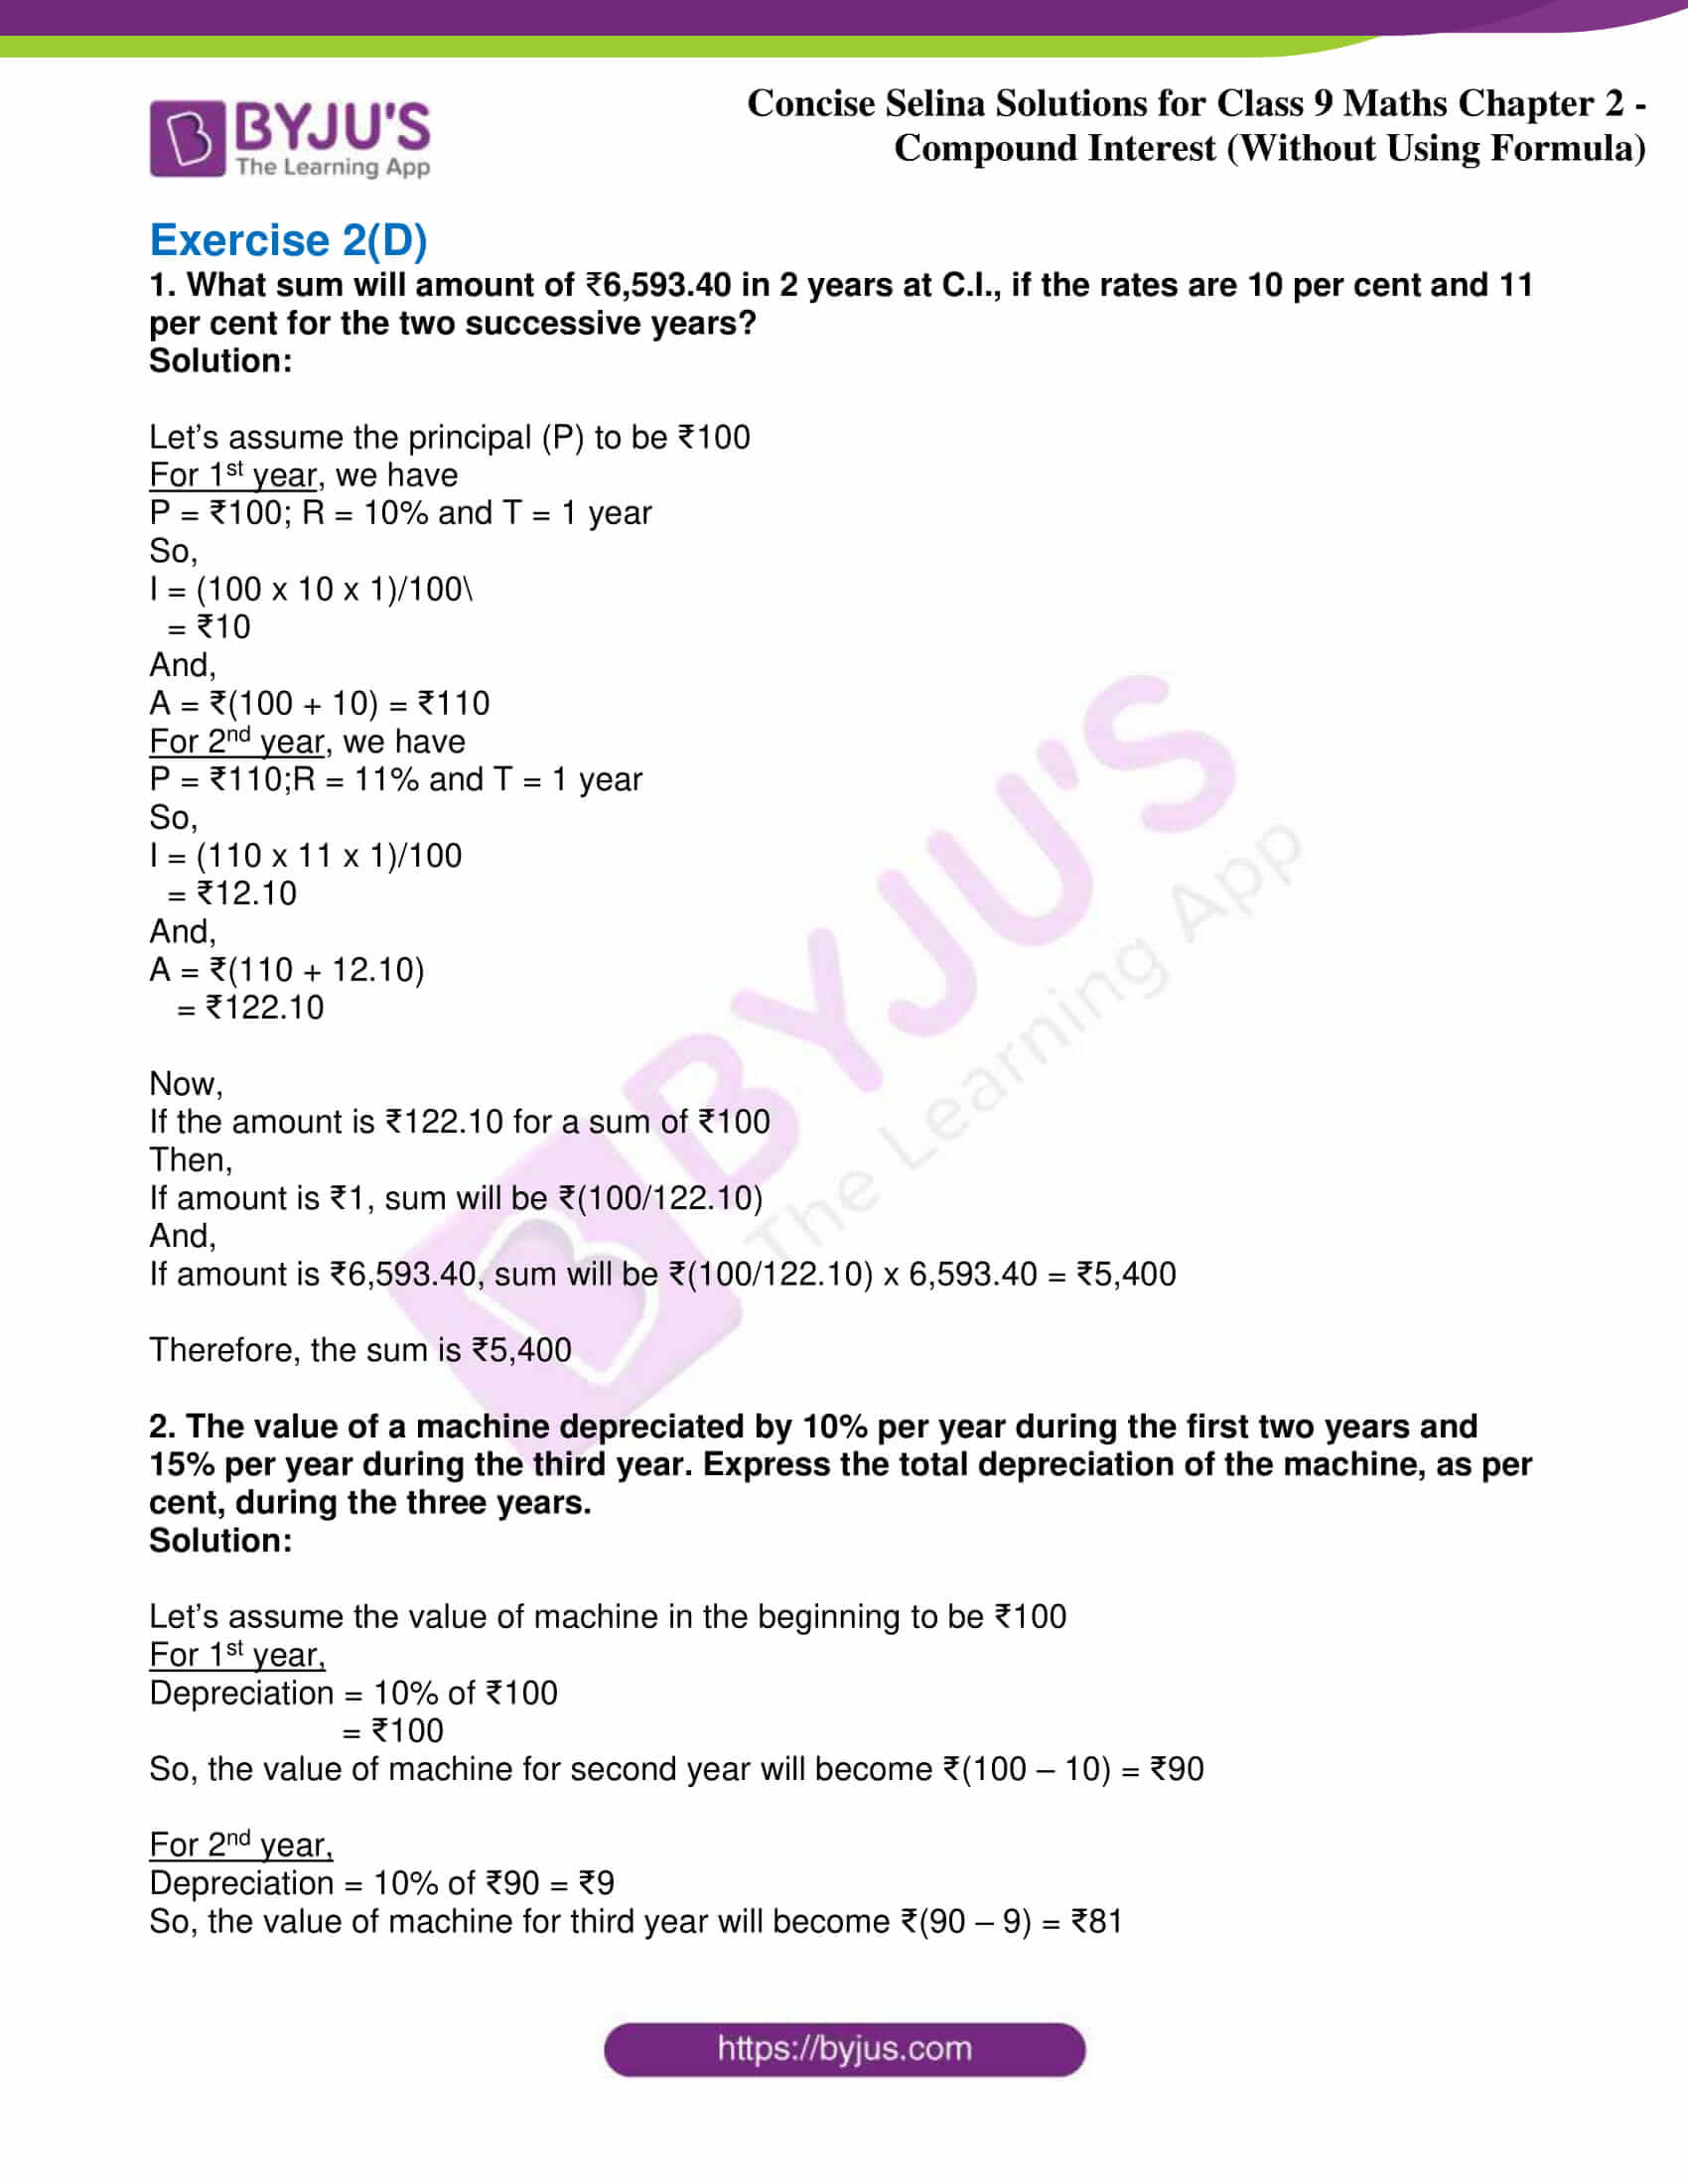 icse class 9 maths may10 selina solutions chapter 2 compound interest without using formula 23